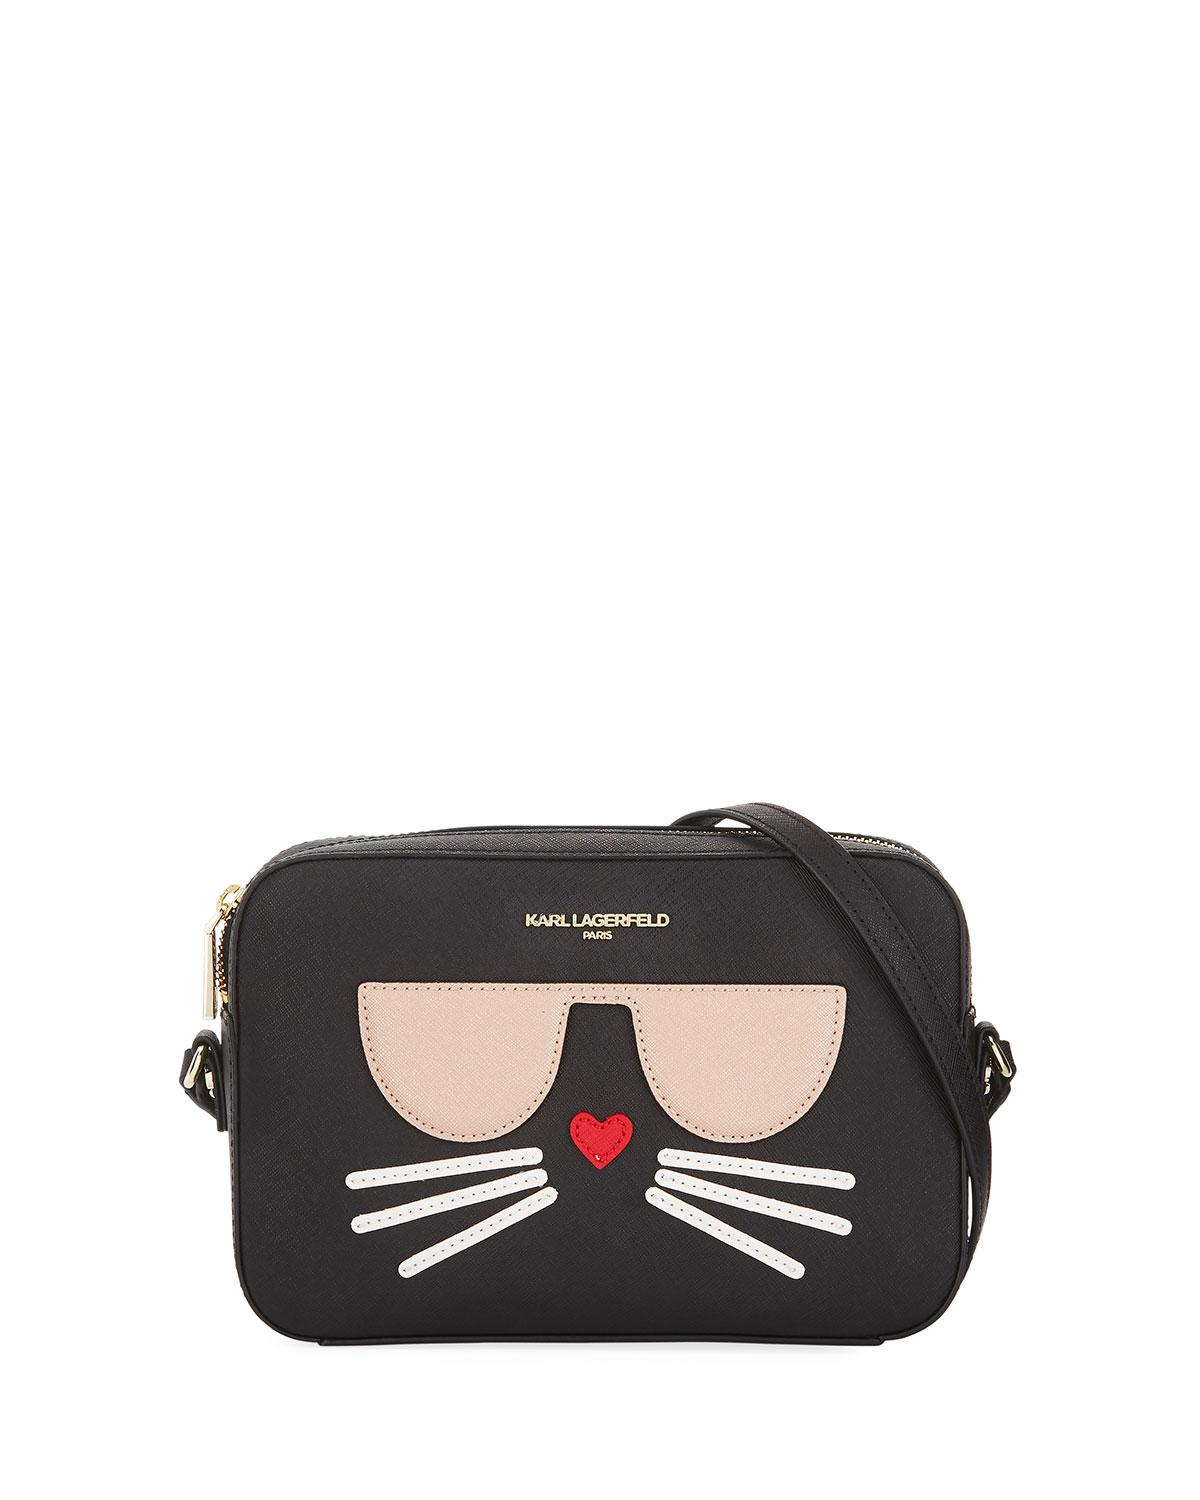 Karl Lagerfeld Maybelle Saffiano Leather Crossbody Bag With